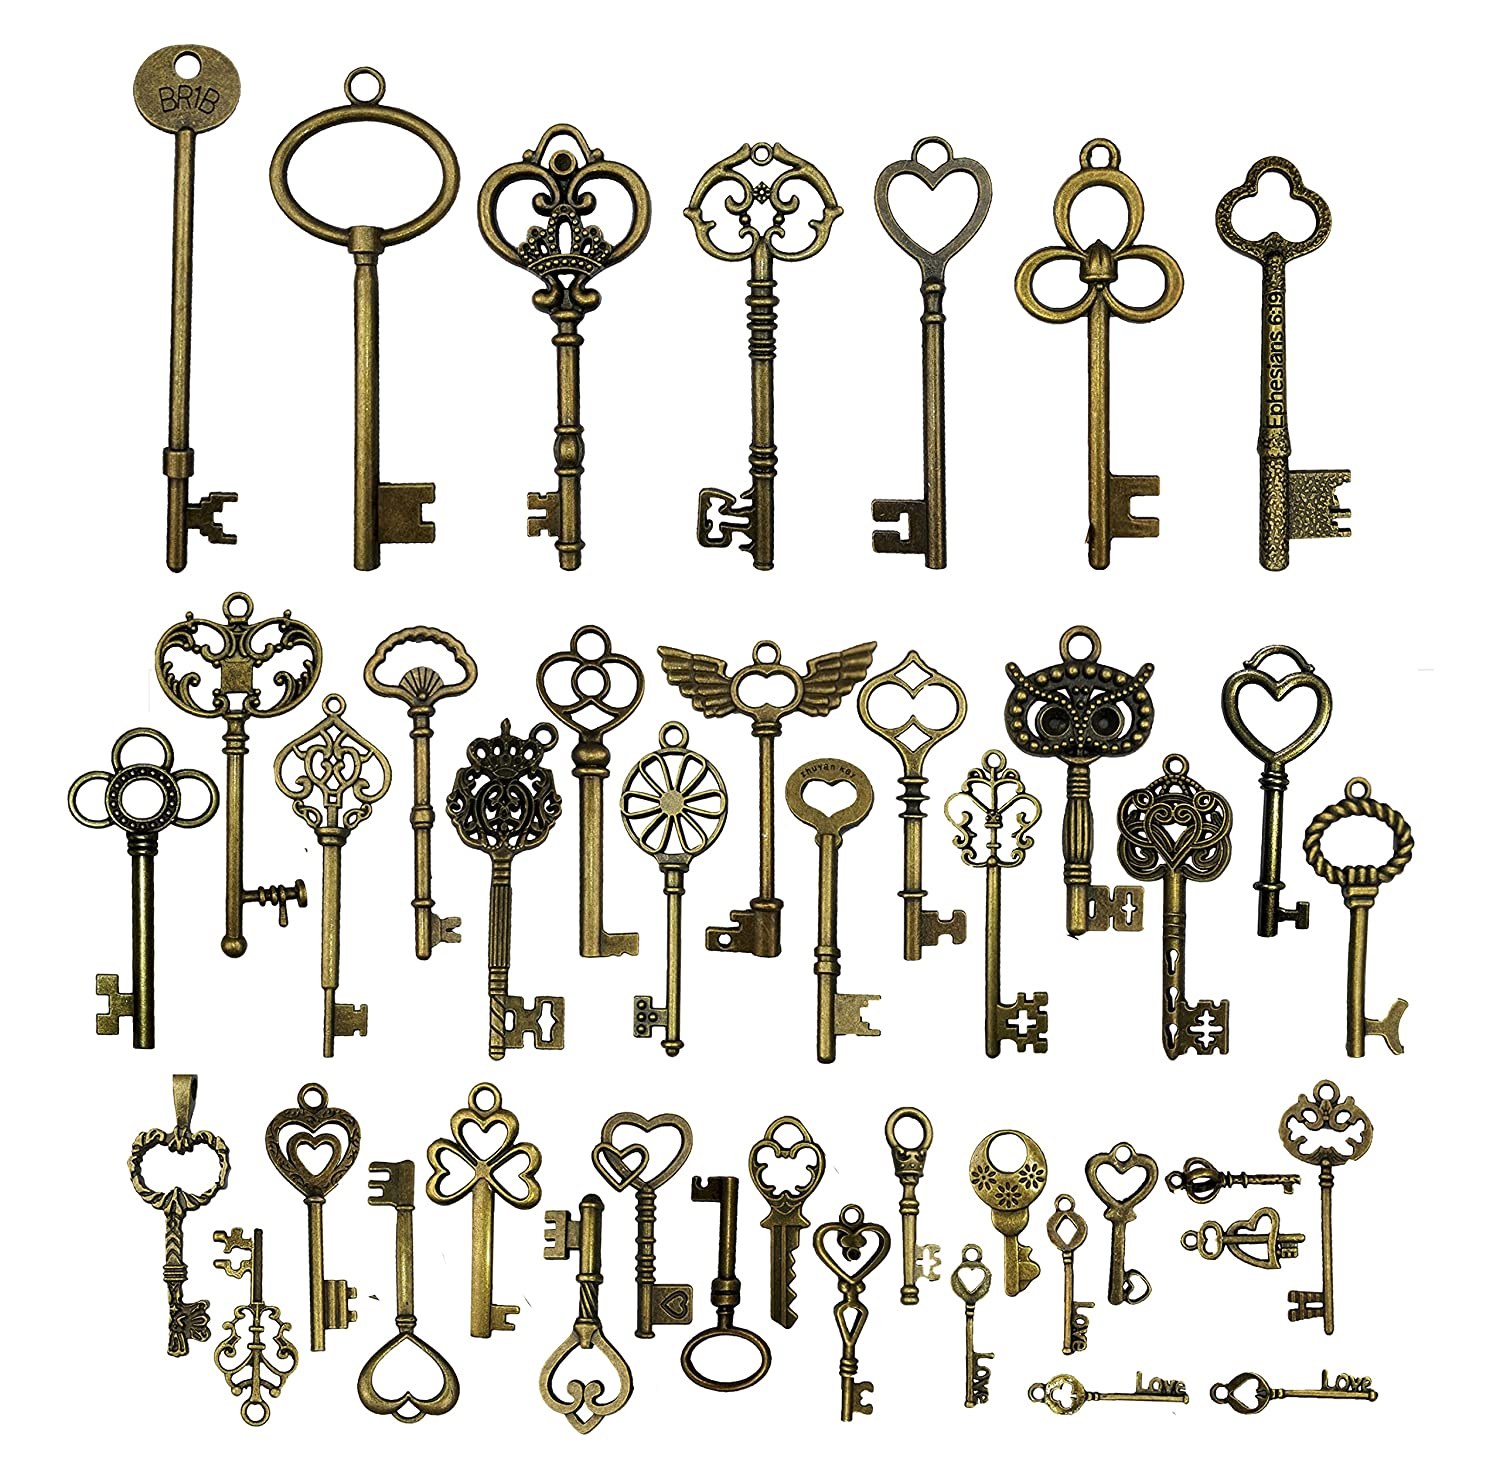 42pcs Mixed Vintage Skeleton Keys, Salome Idea 42 Styles Key for Alice in Wonderland Party, Each 1piece (Brone) Salomé